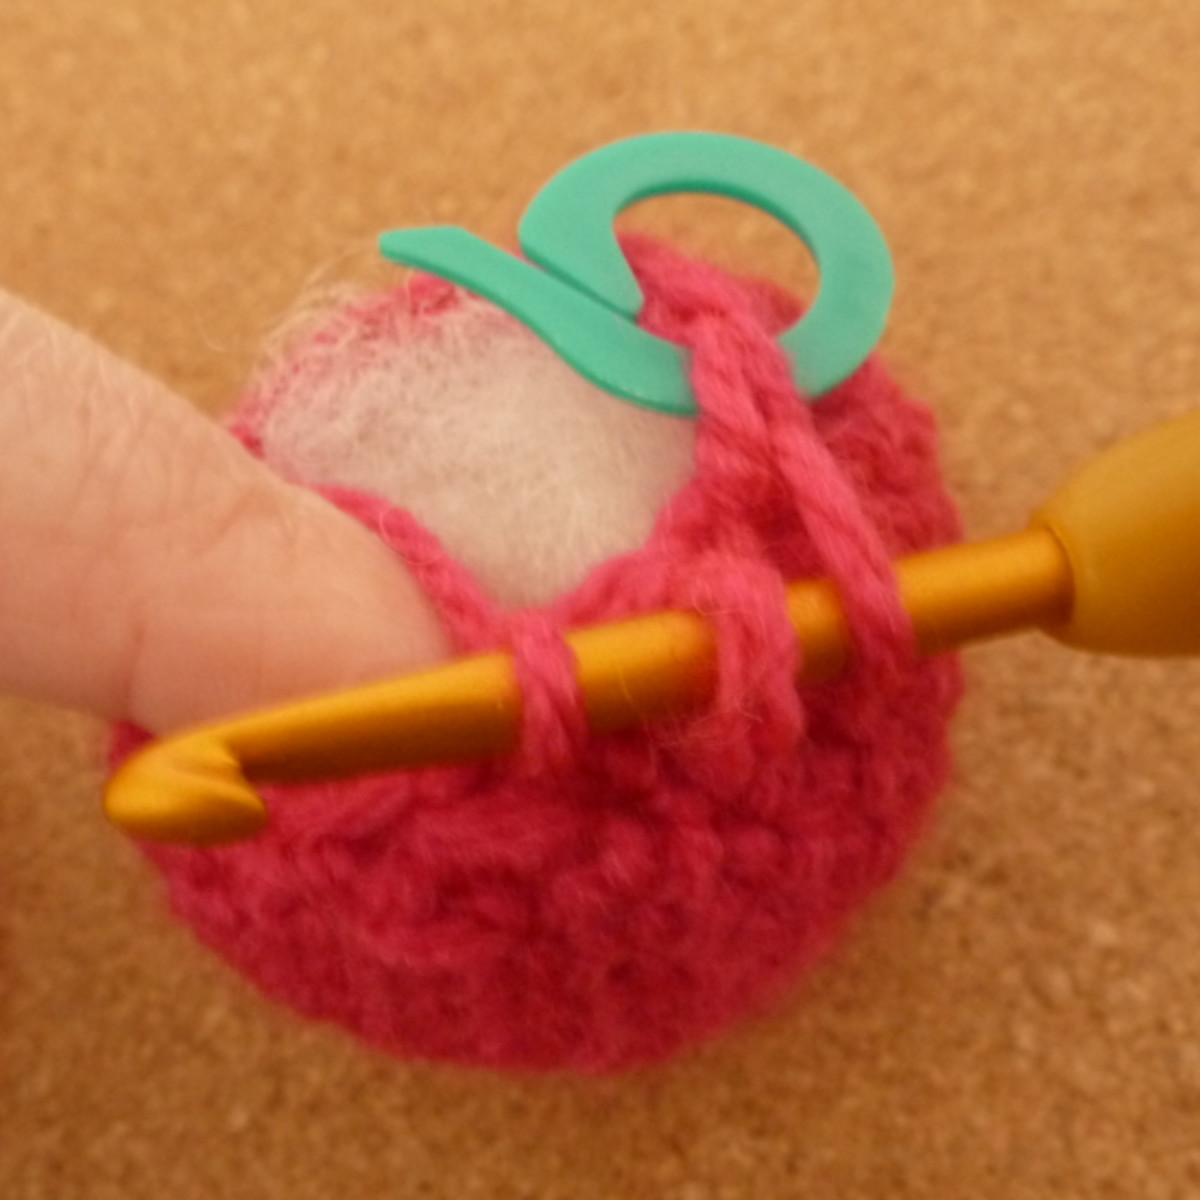 Crocheting a strawberry and getting near the top of the design.